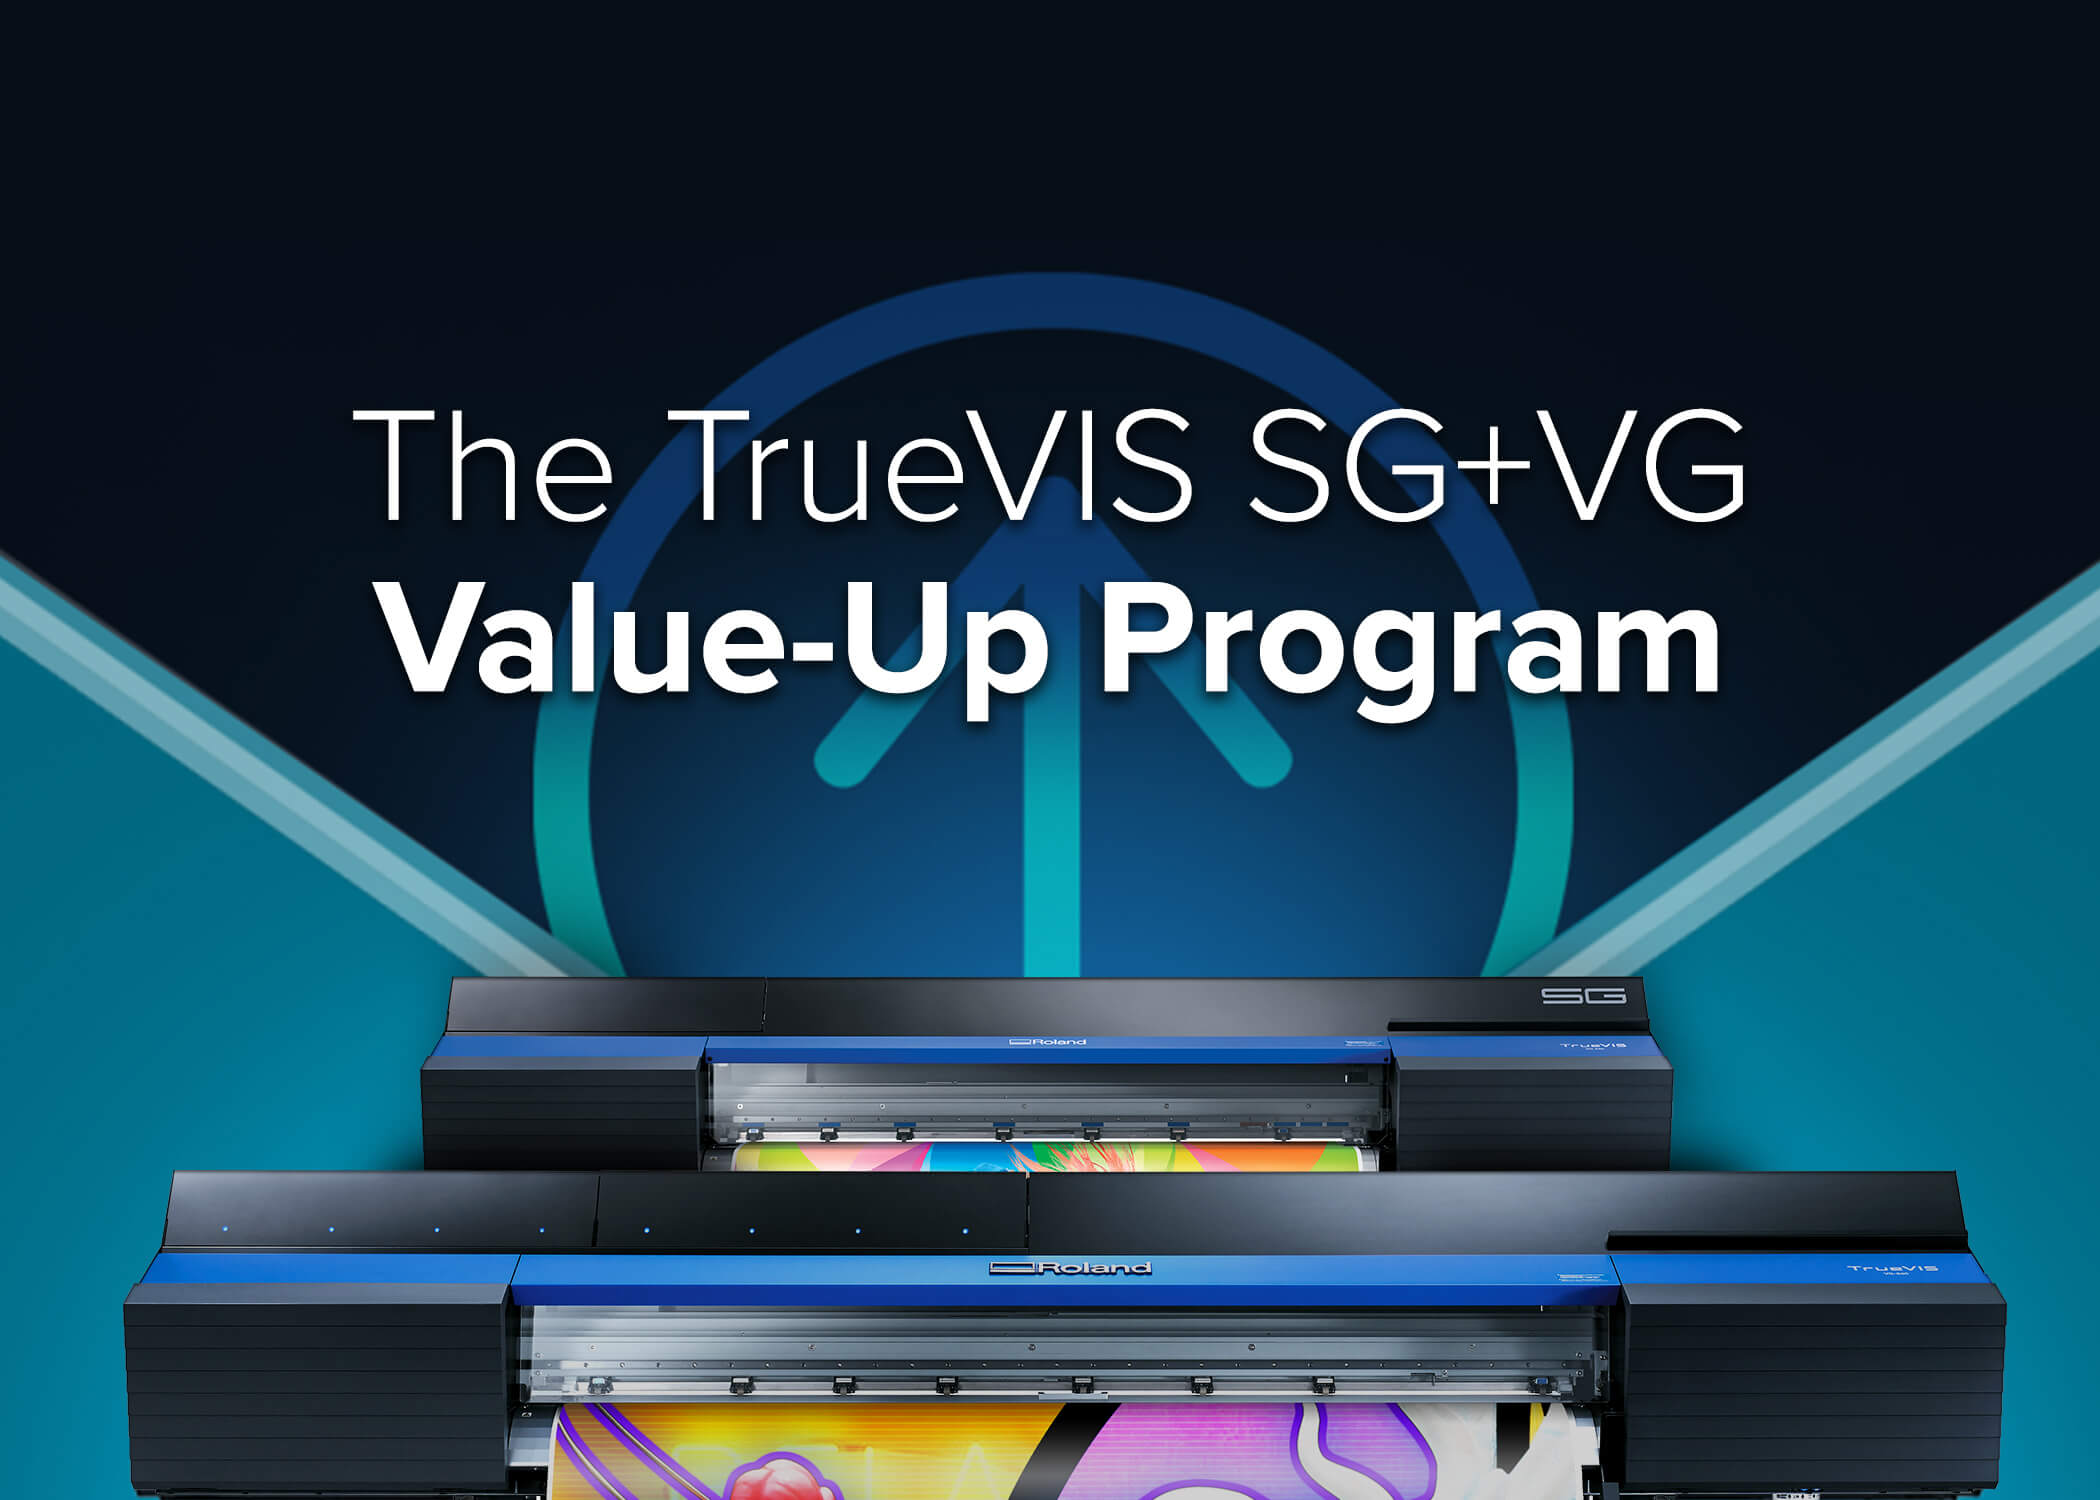 Roland DGA Expands Value-Up Program for TrueVIS VG and SG printer/cutters